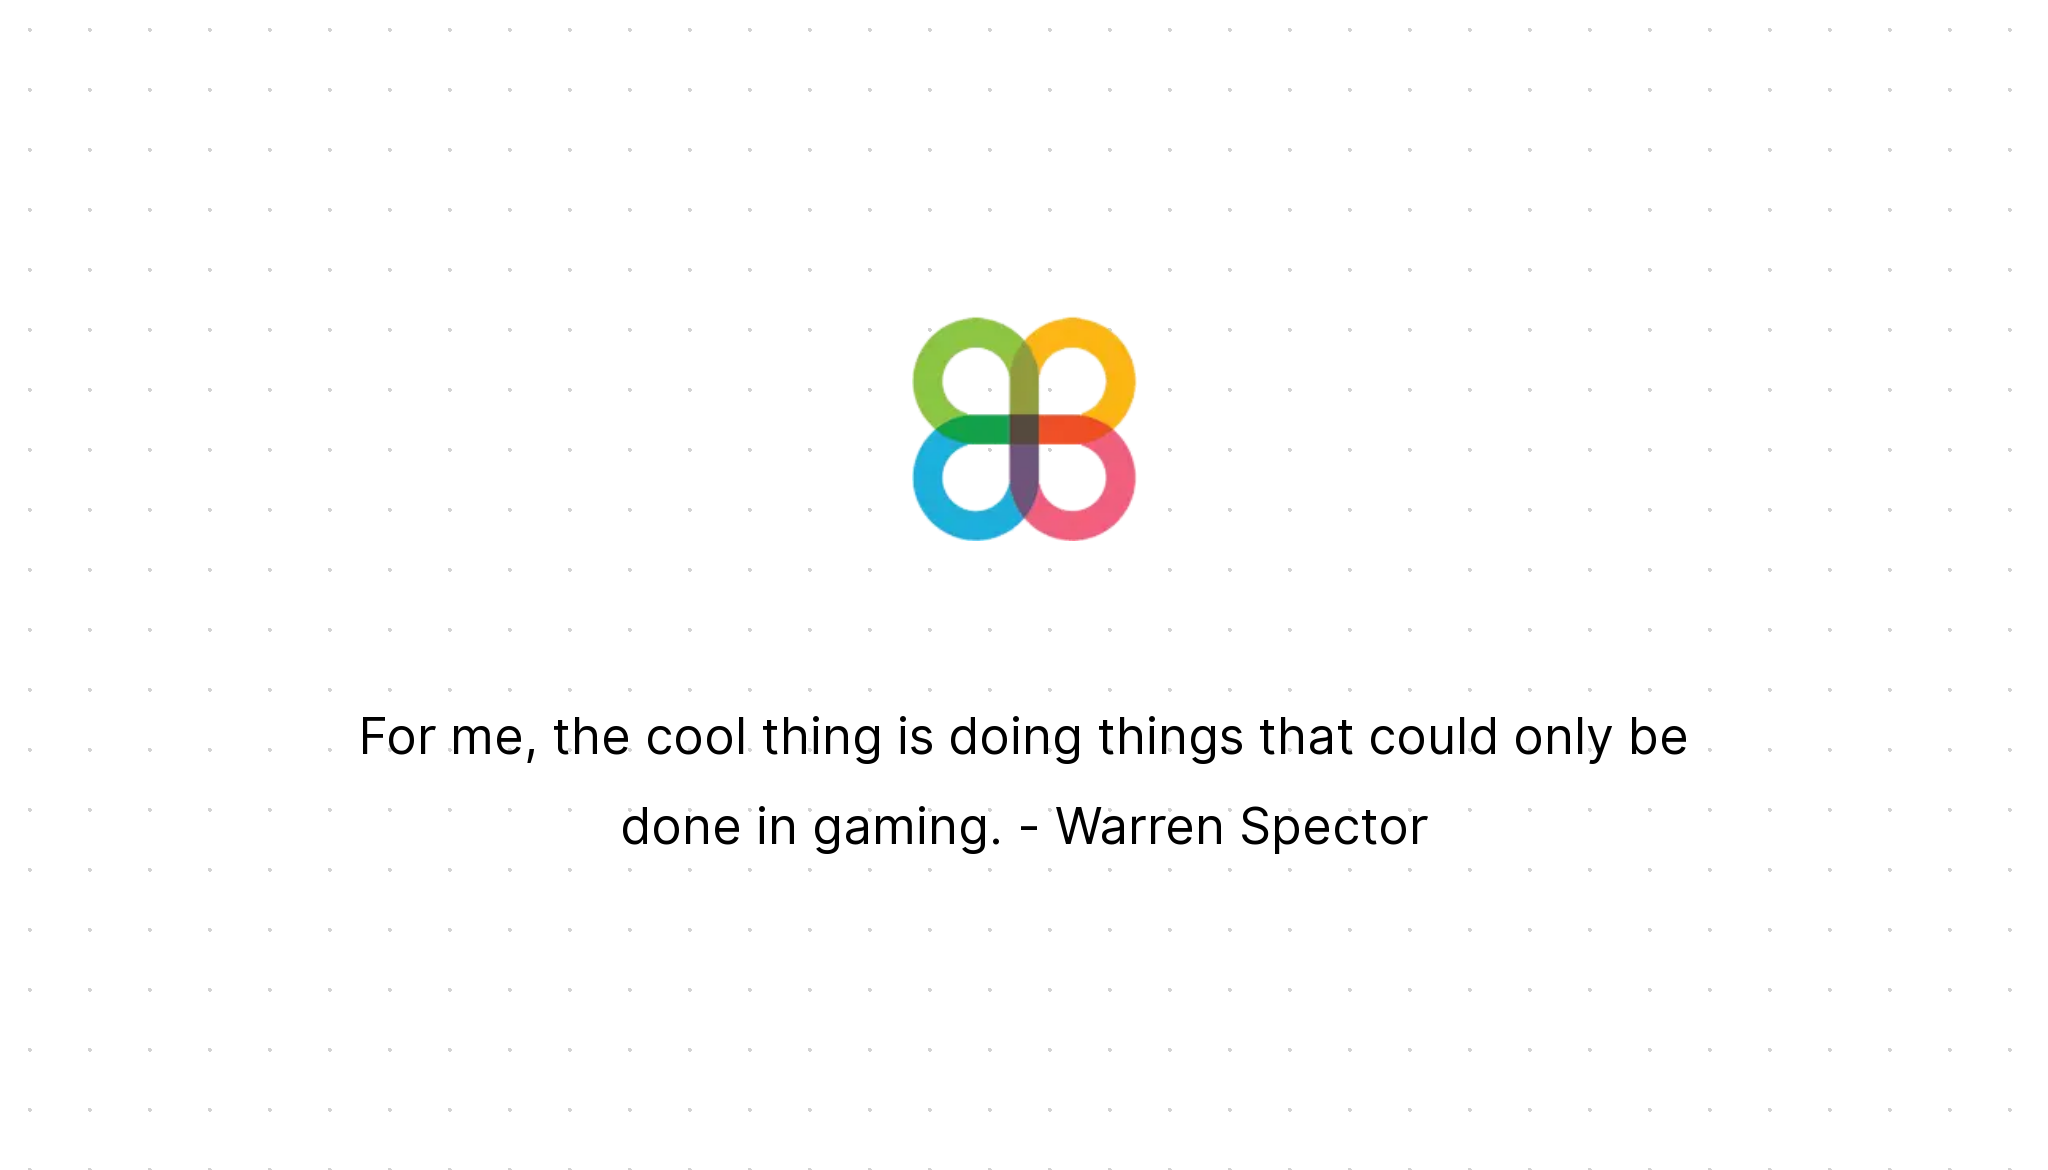 For Me The Cool Thing Is Doing Things That Could Only Be